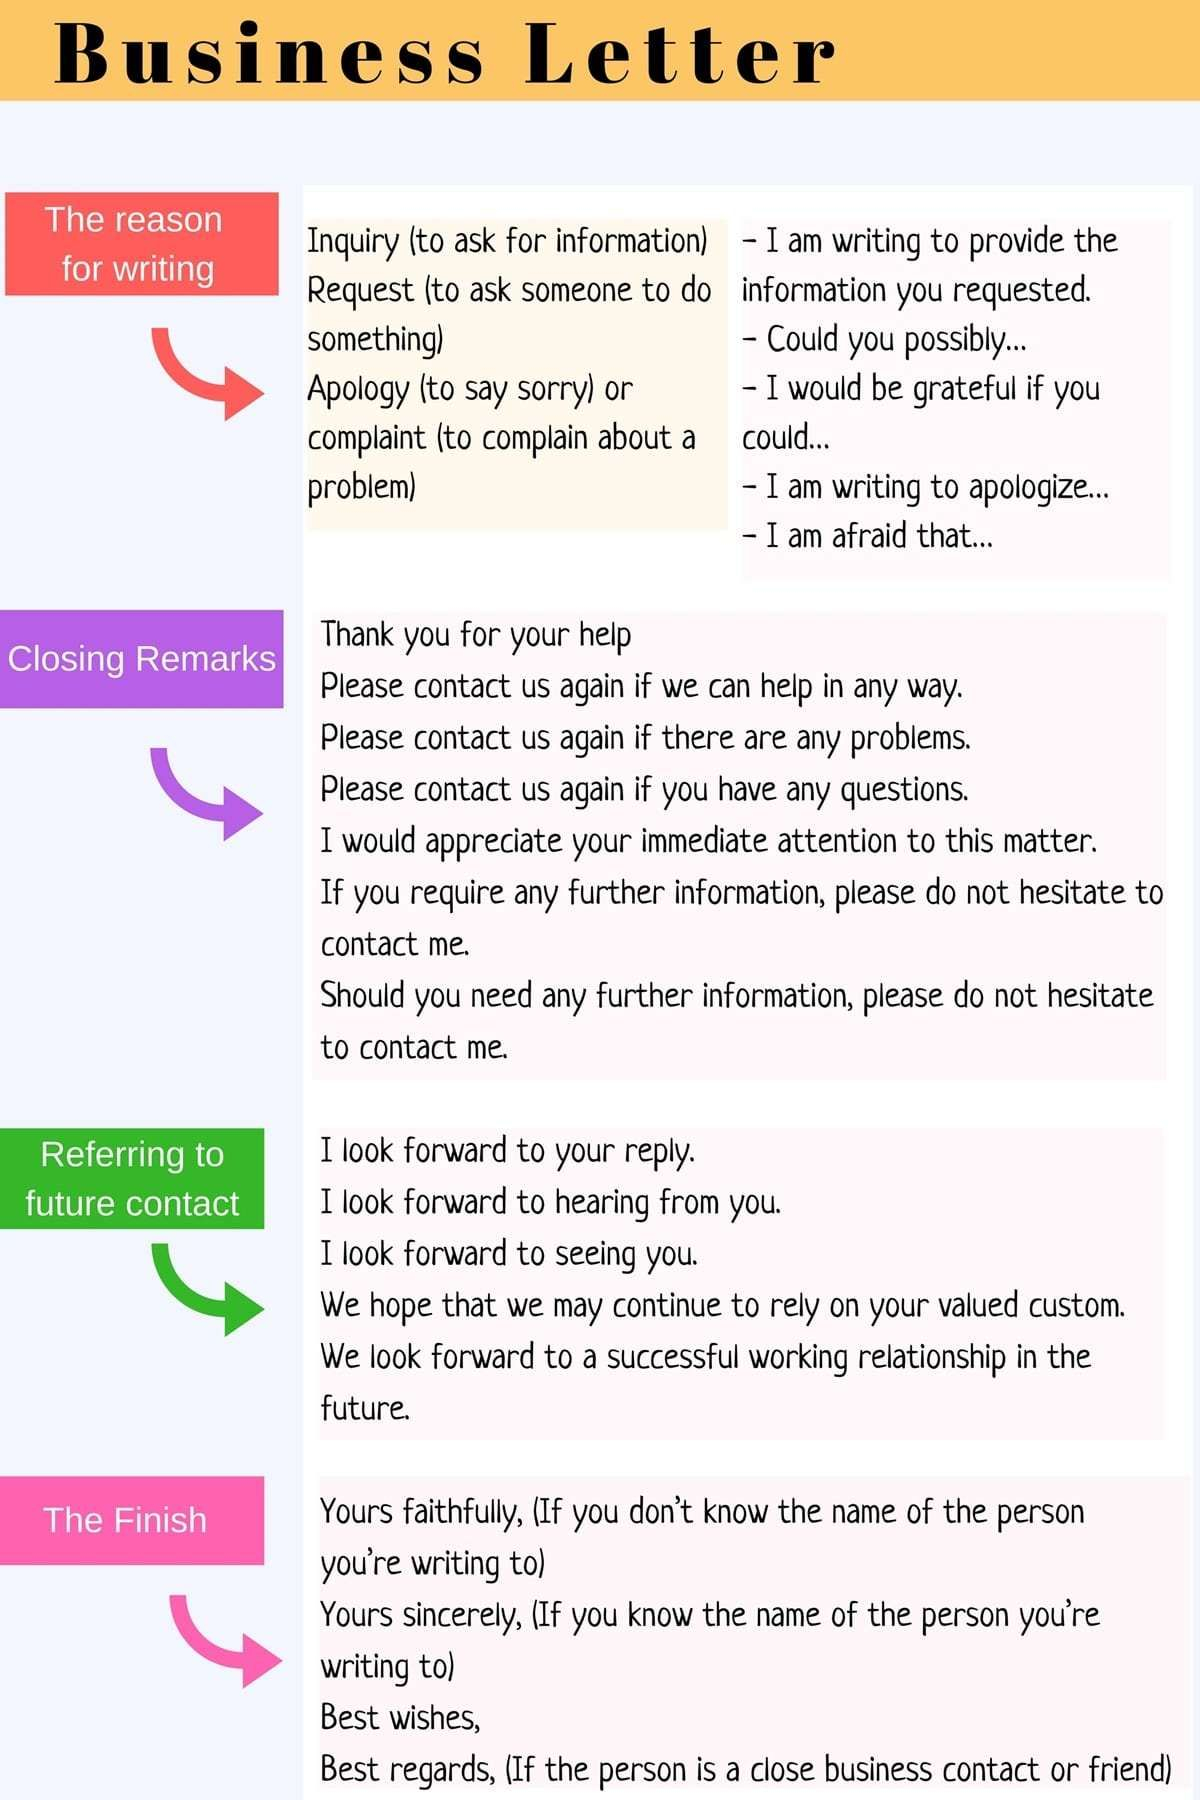 How To Write An Effective Business Letter In English